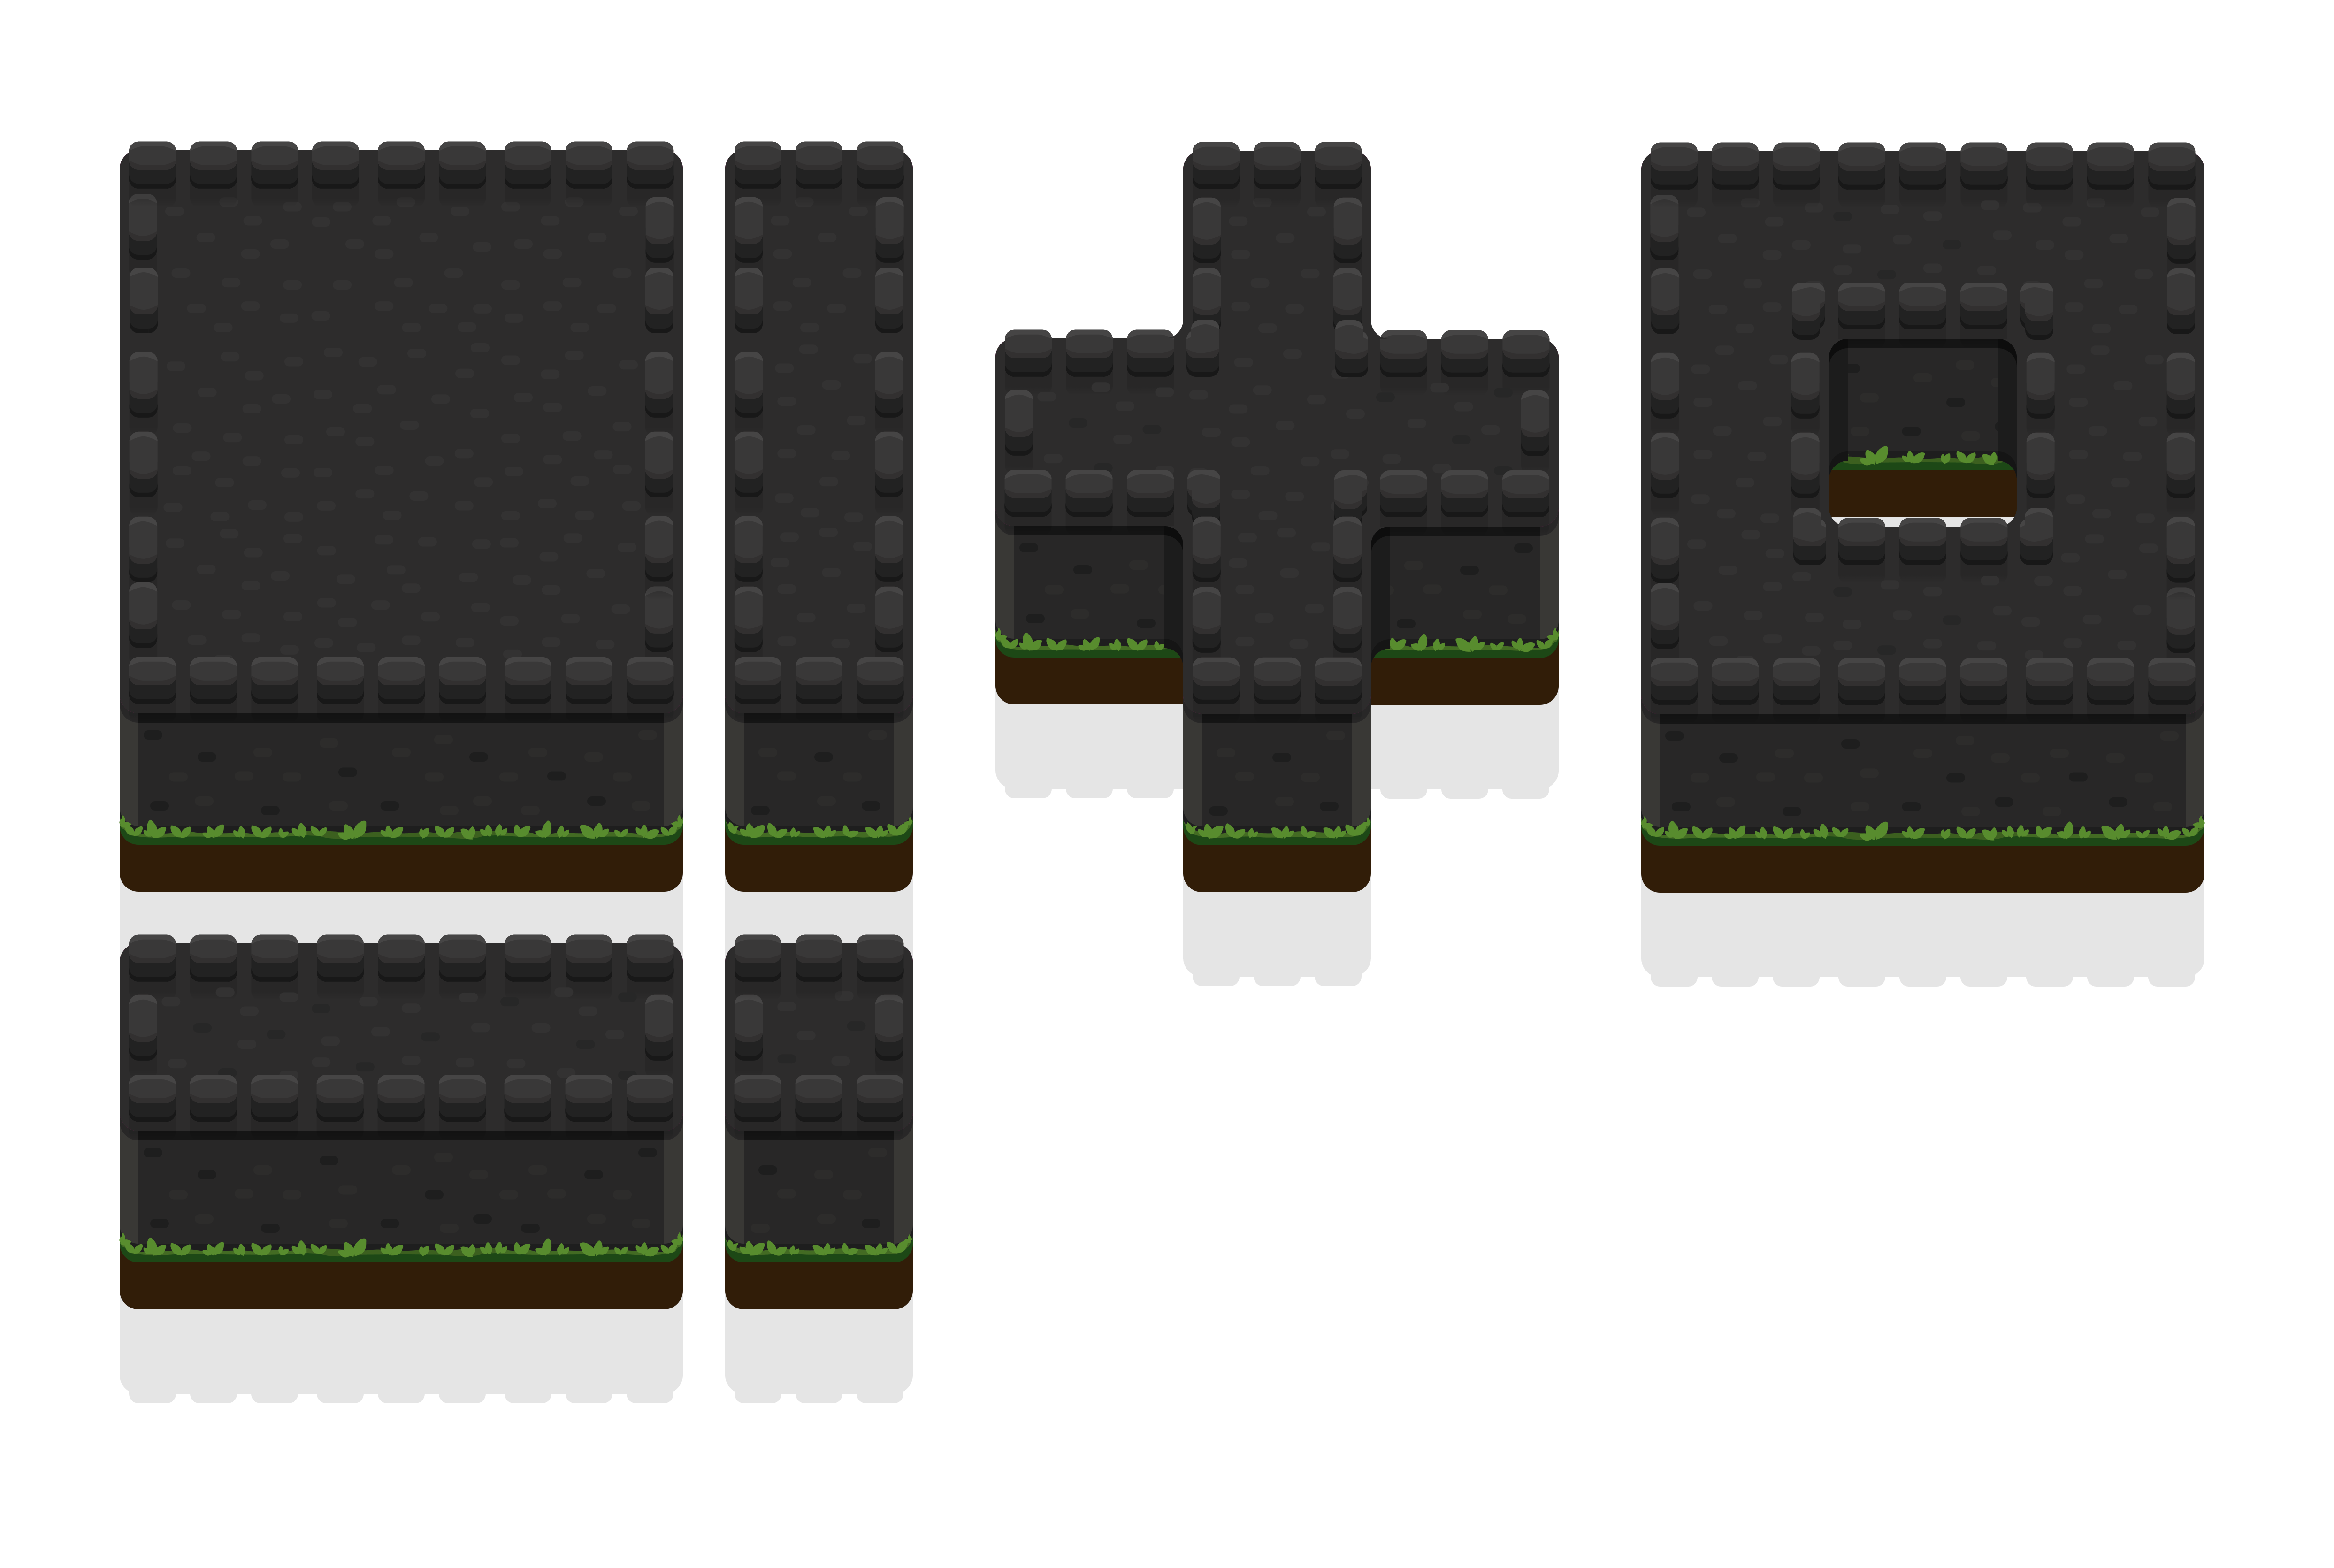 A screenshot showing how different wall blocks fit together to create patterns in the game